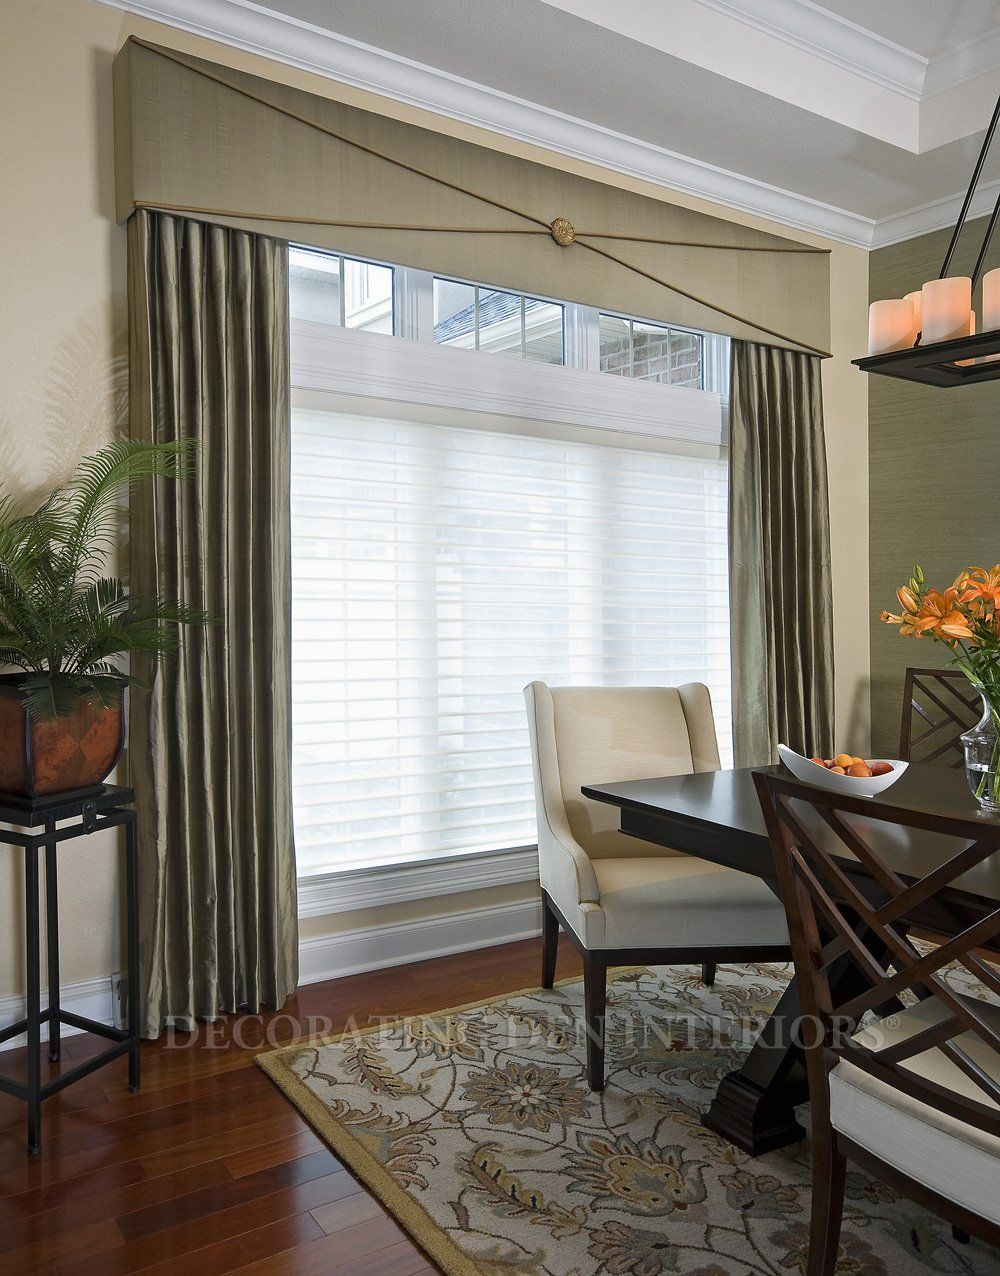 Cly Ing Up A Traditional Window Treatment With Sleek Cornice I Lois Pade Decorating Den Interiors